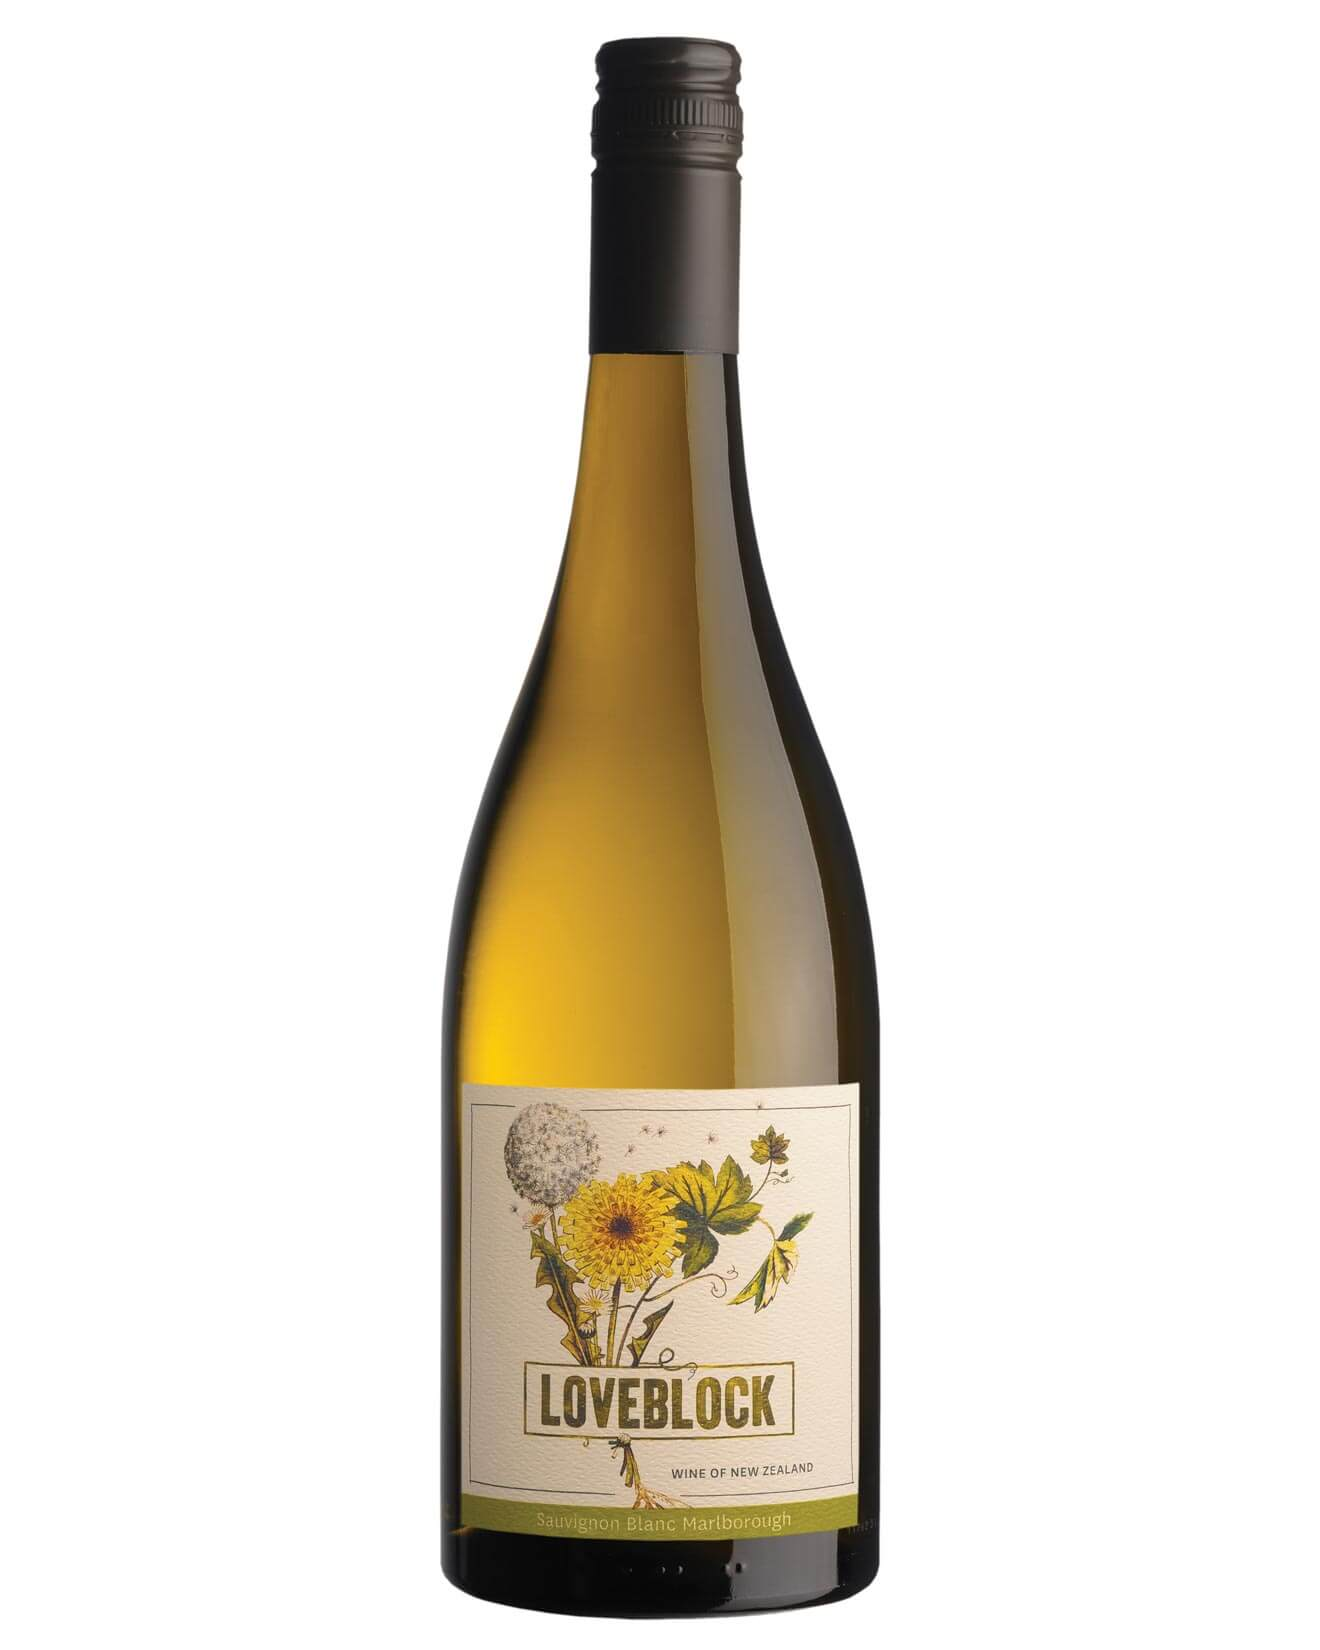 Loveblock Sauvignon Blanc 2018, bottle on white